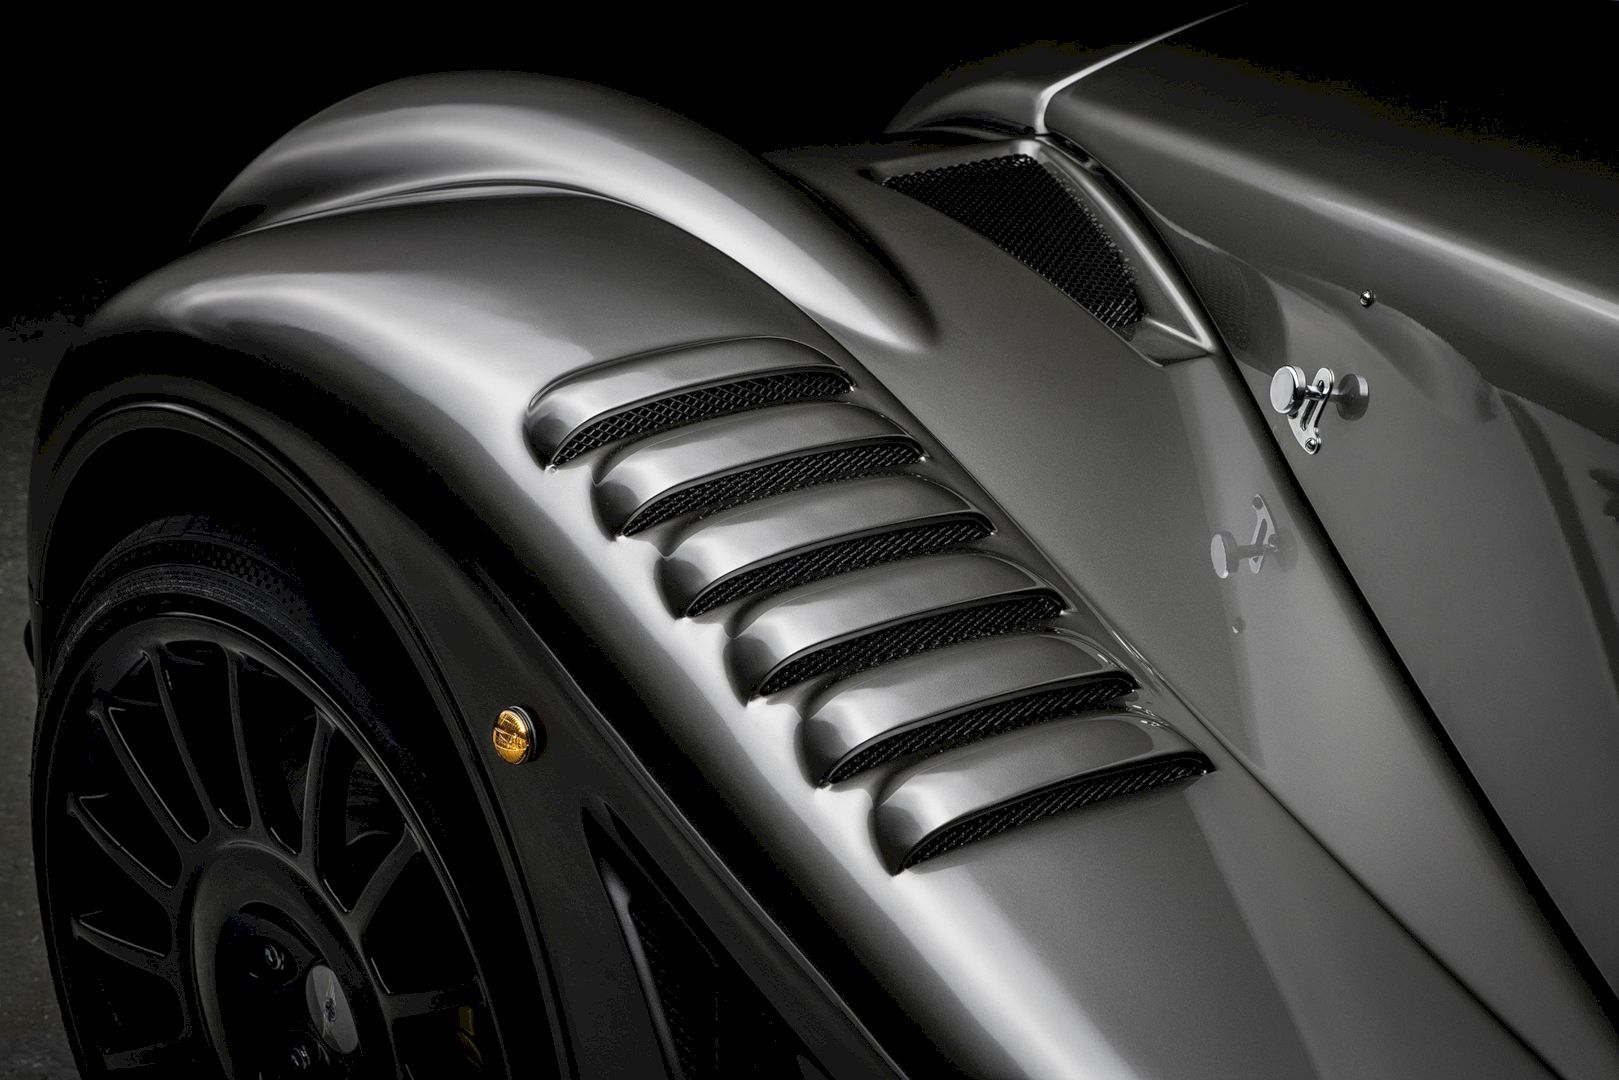 The Morgan Aero Gt The Definition Of Luxury Badass Car Designs